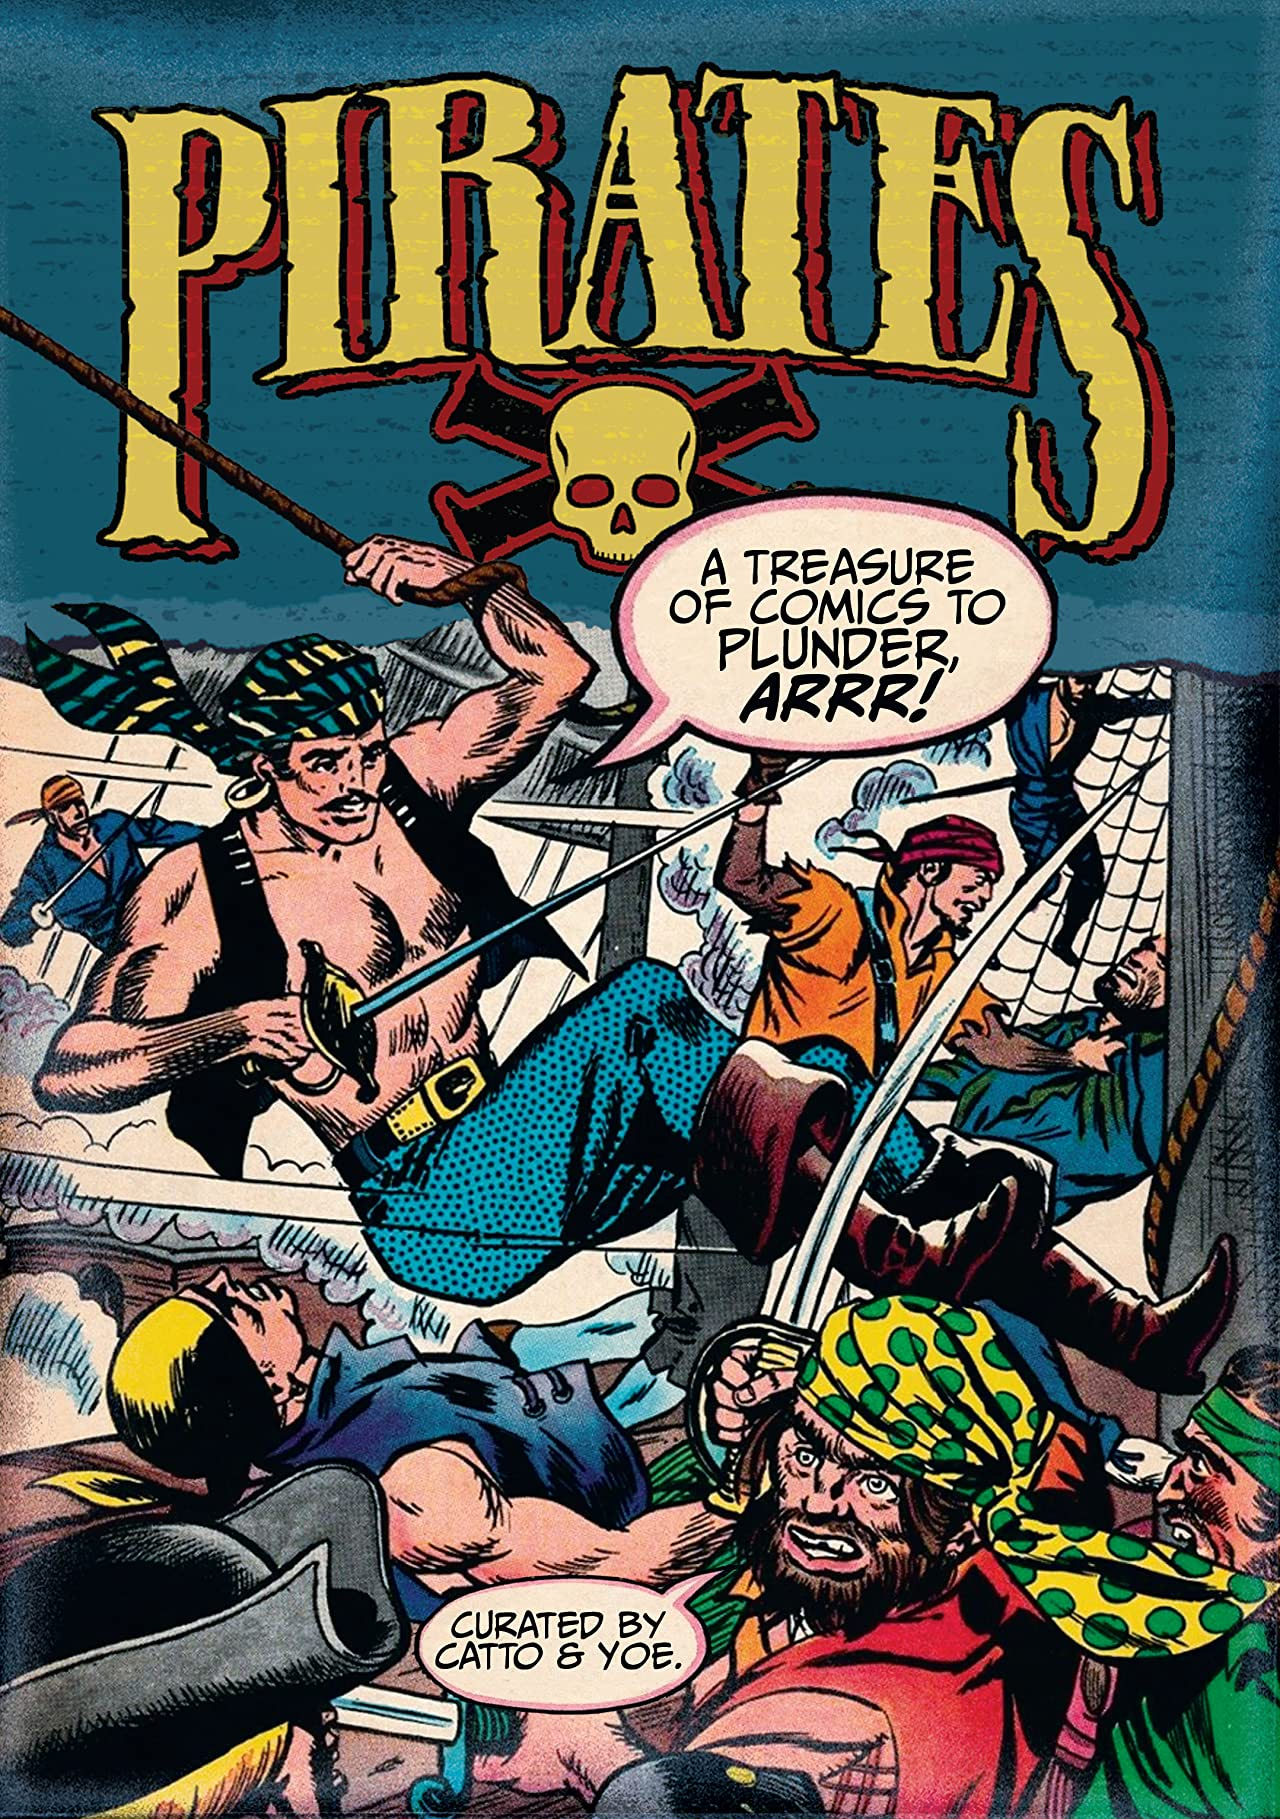 Pirates: A Treasure of Comics to Plunder, Arrr!